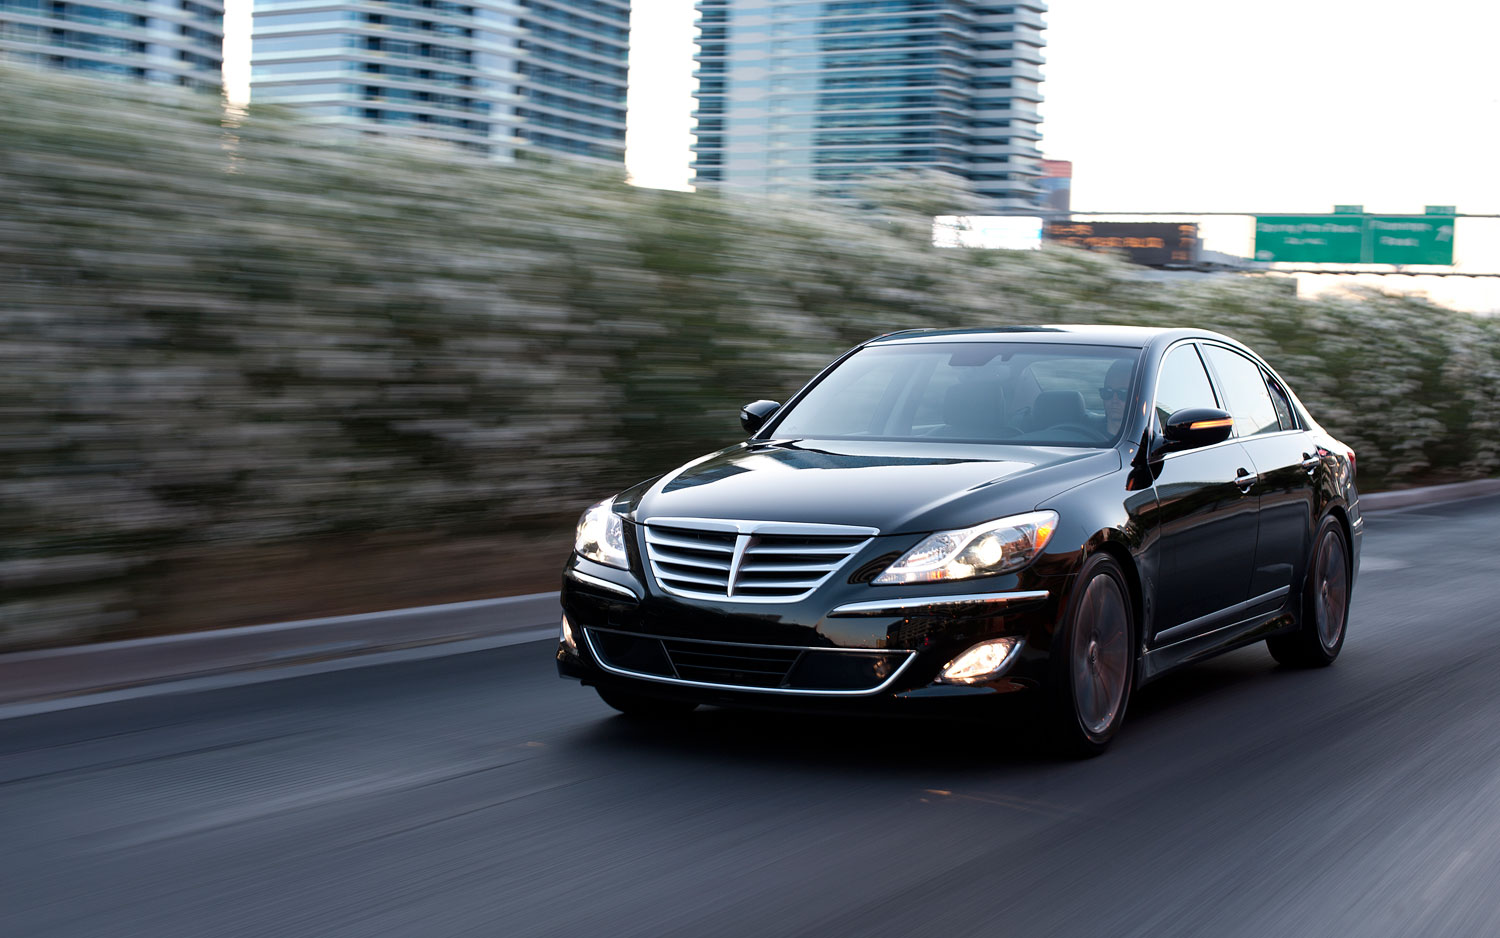 2012 hyundai genesis sedan 5 0 r spec first drive automobile magazine. Black Bedroom Furniture Sets. Home Design Ideas